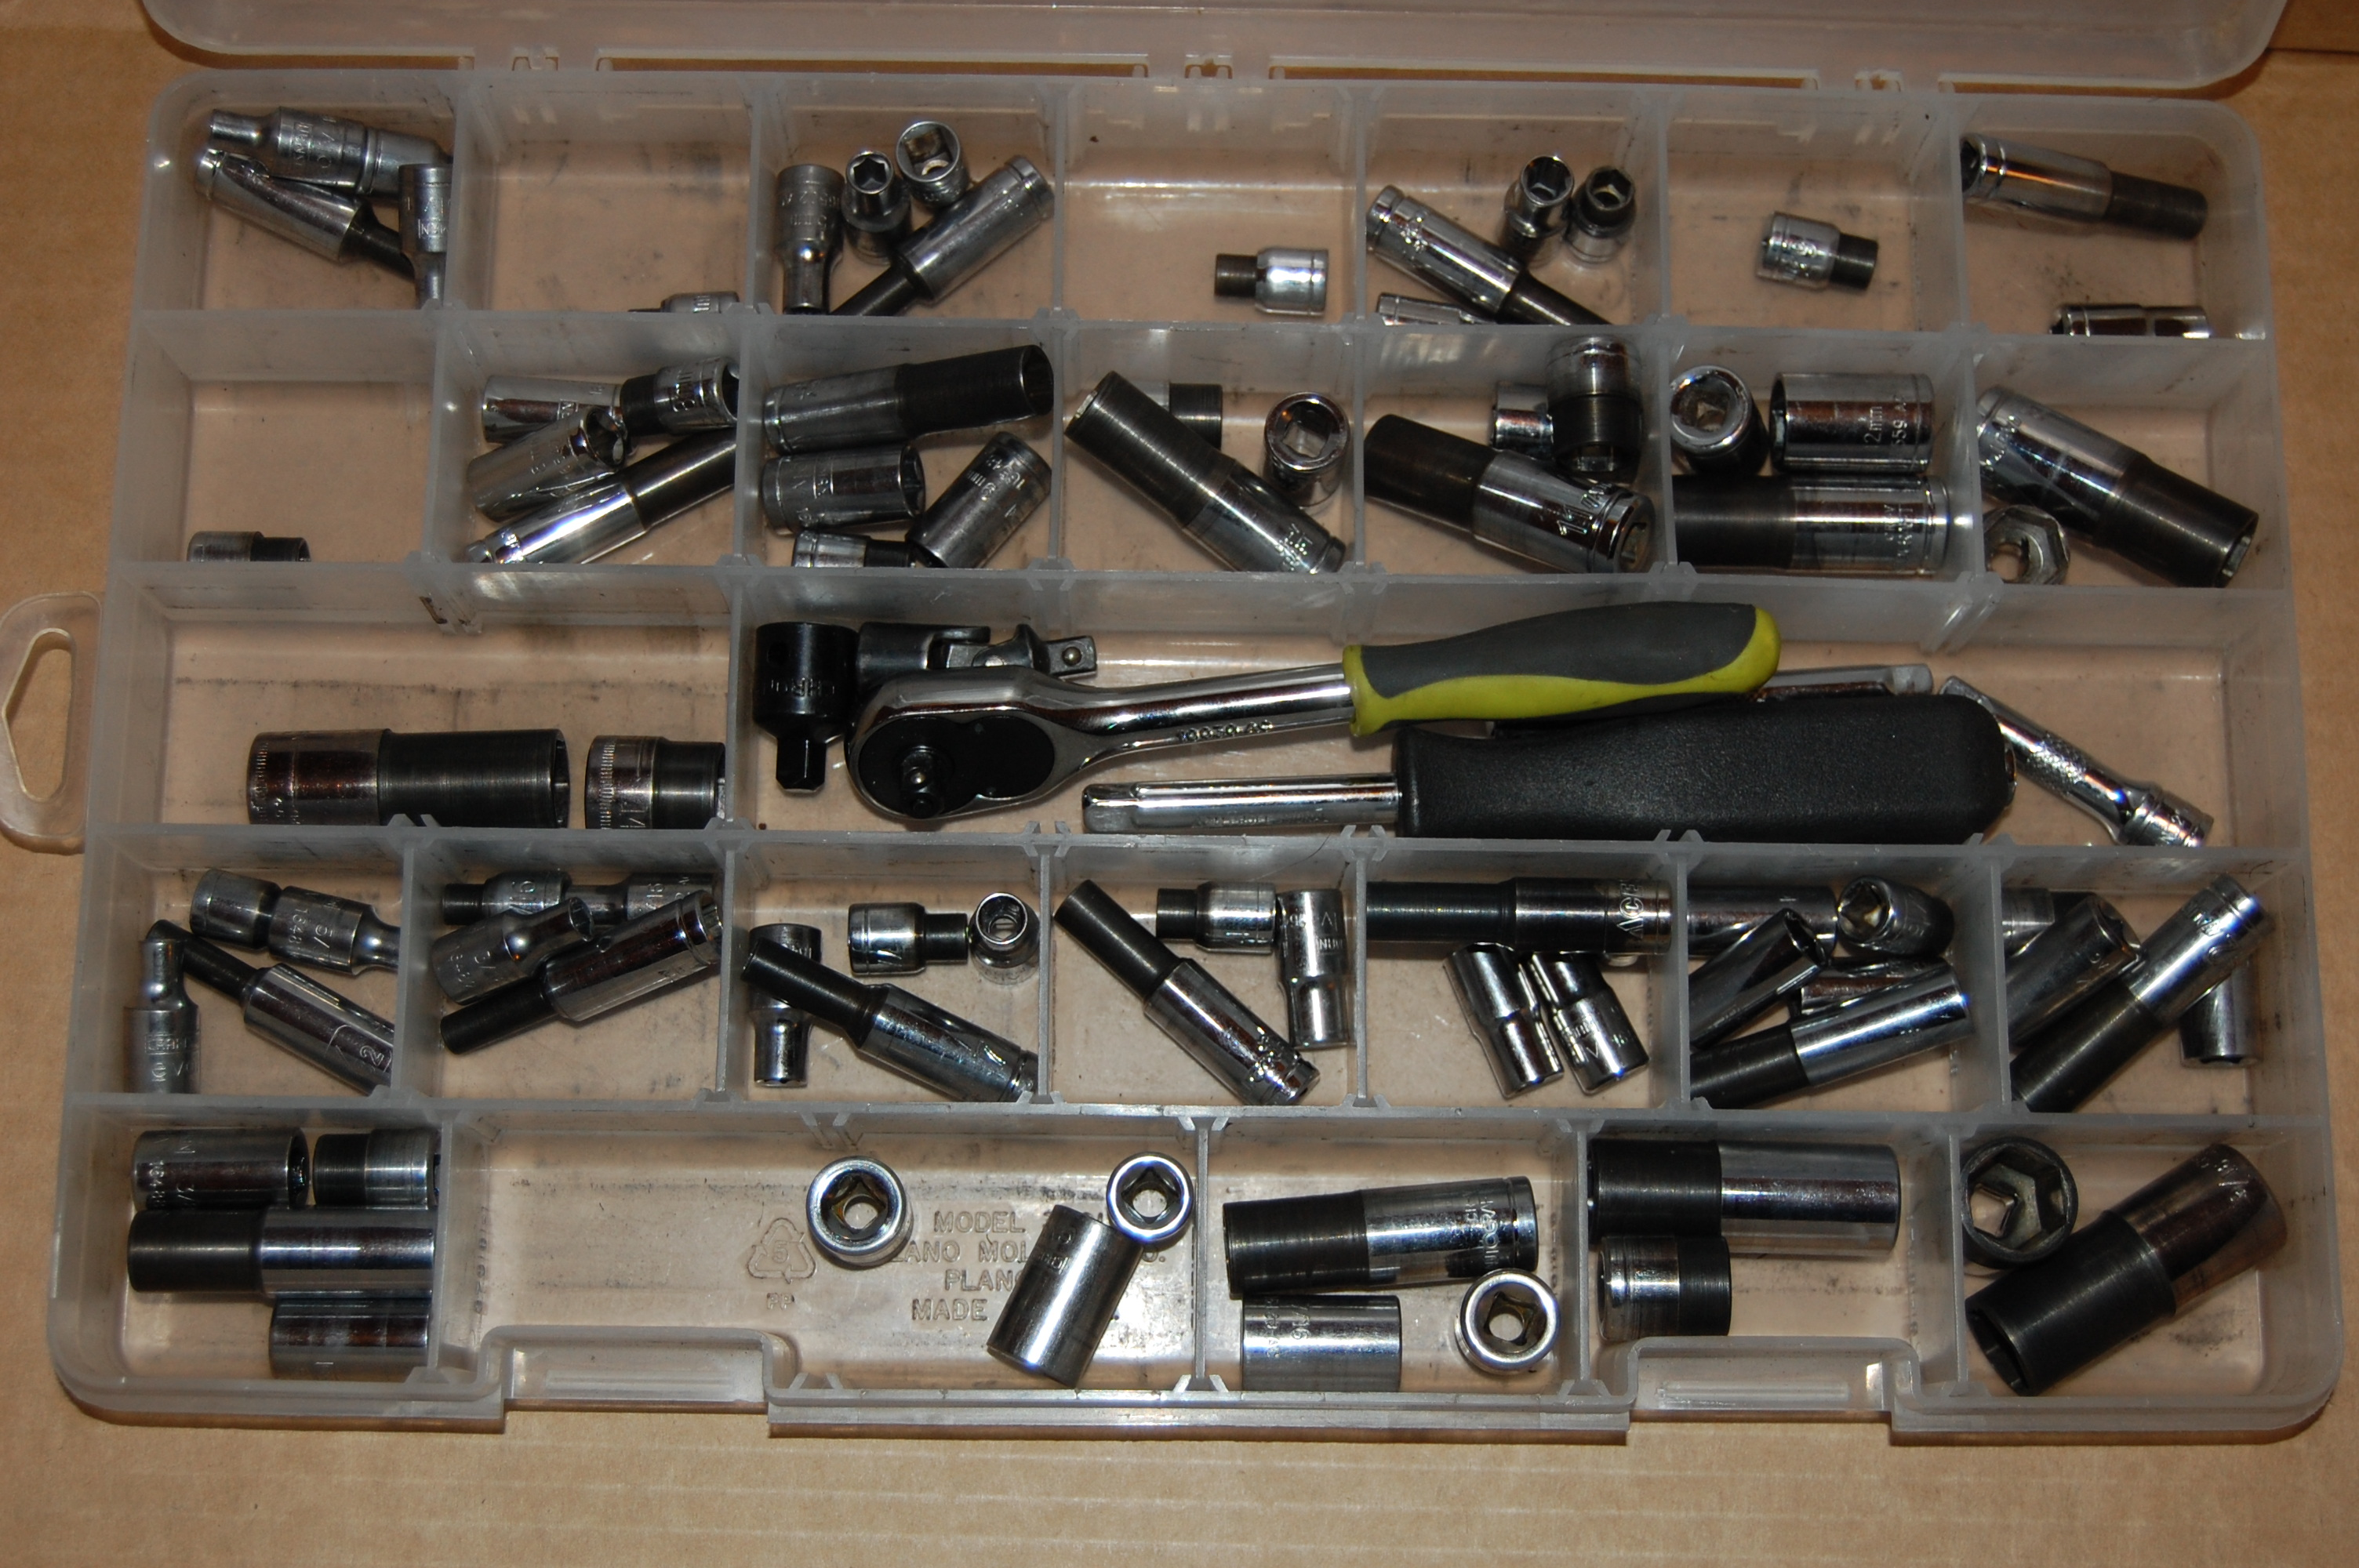 Basic hand tools for electronics assembly - Ed Nutter